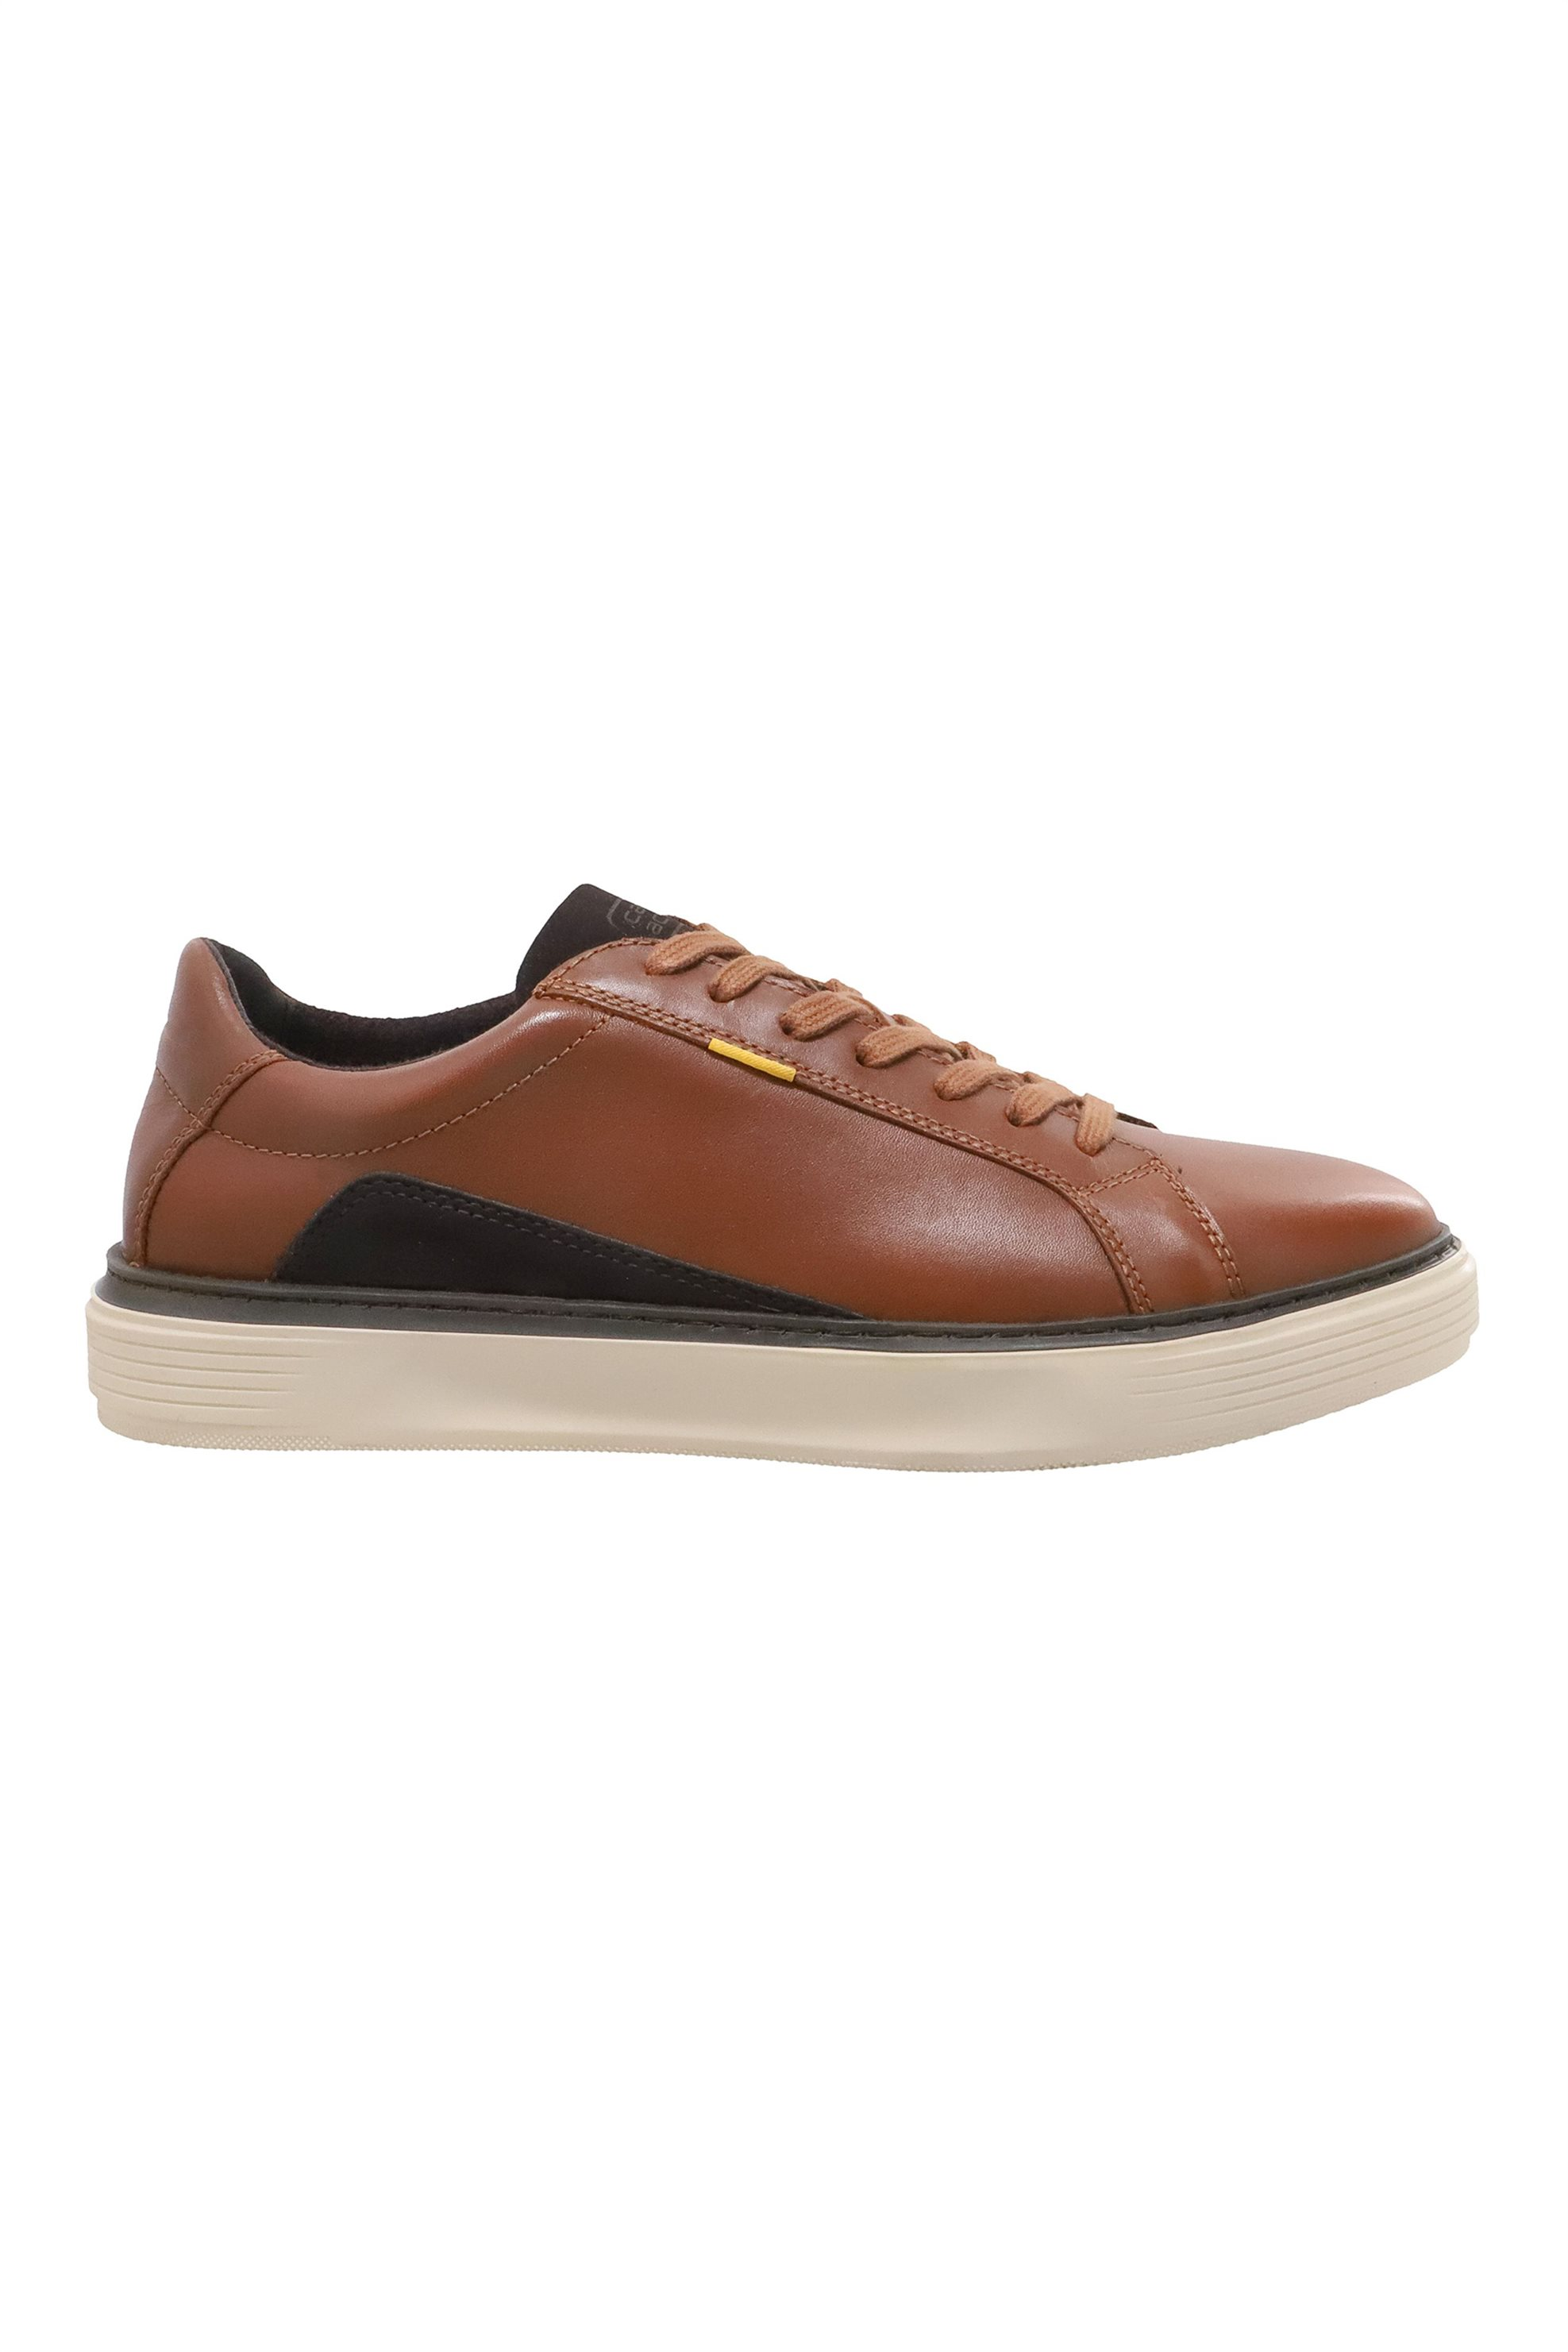 """Camel Active ανδρικά δερμάτινα sneakers """"Avol Low Lace"""" – CH-91-231240 – Ταμπά"""